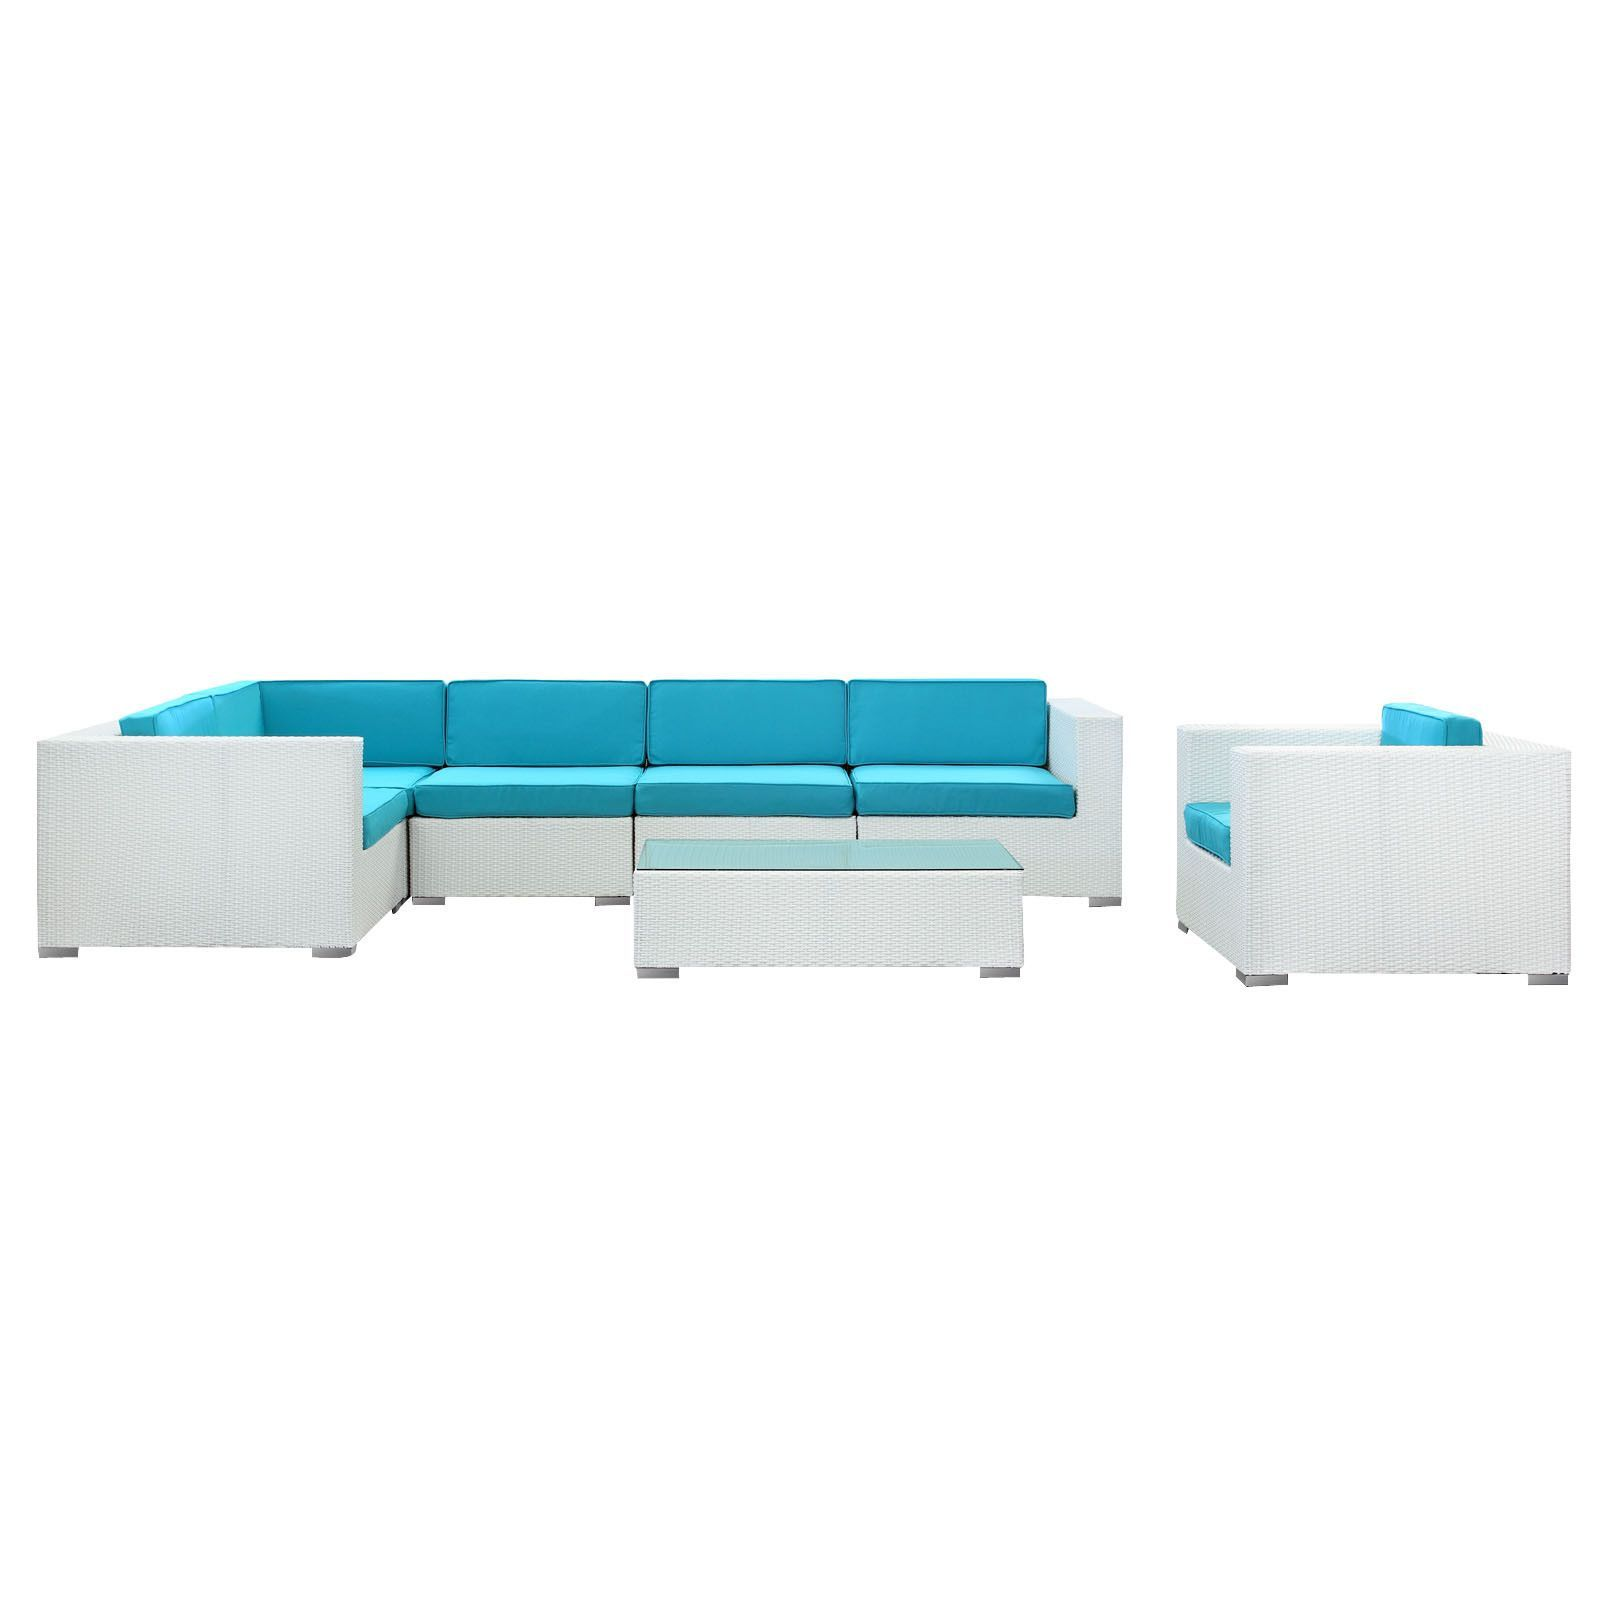 Modway Corona 7 Piece Outdoor Patio Sectional Set